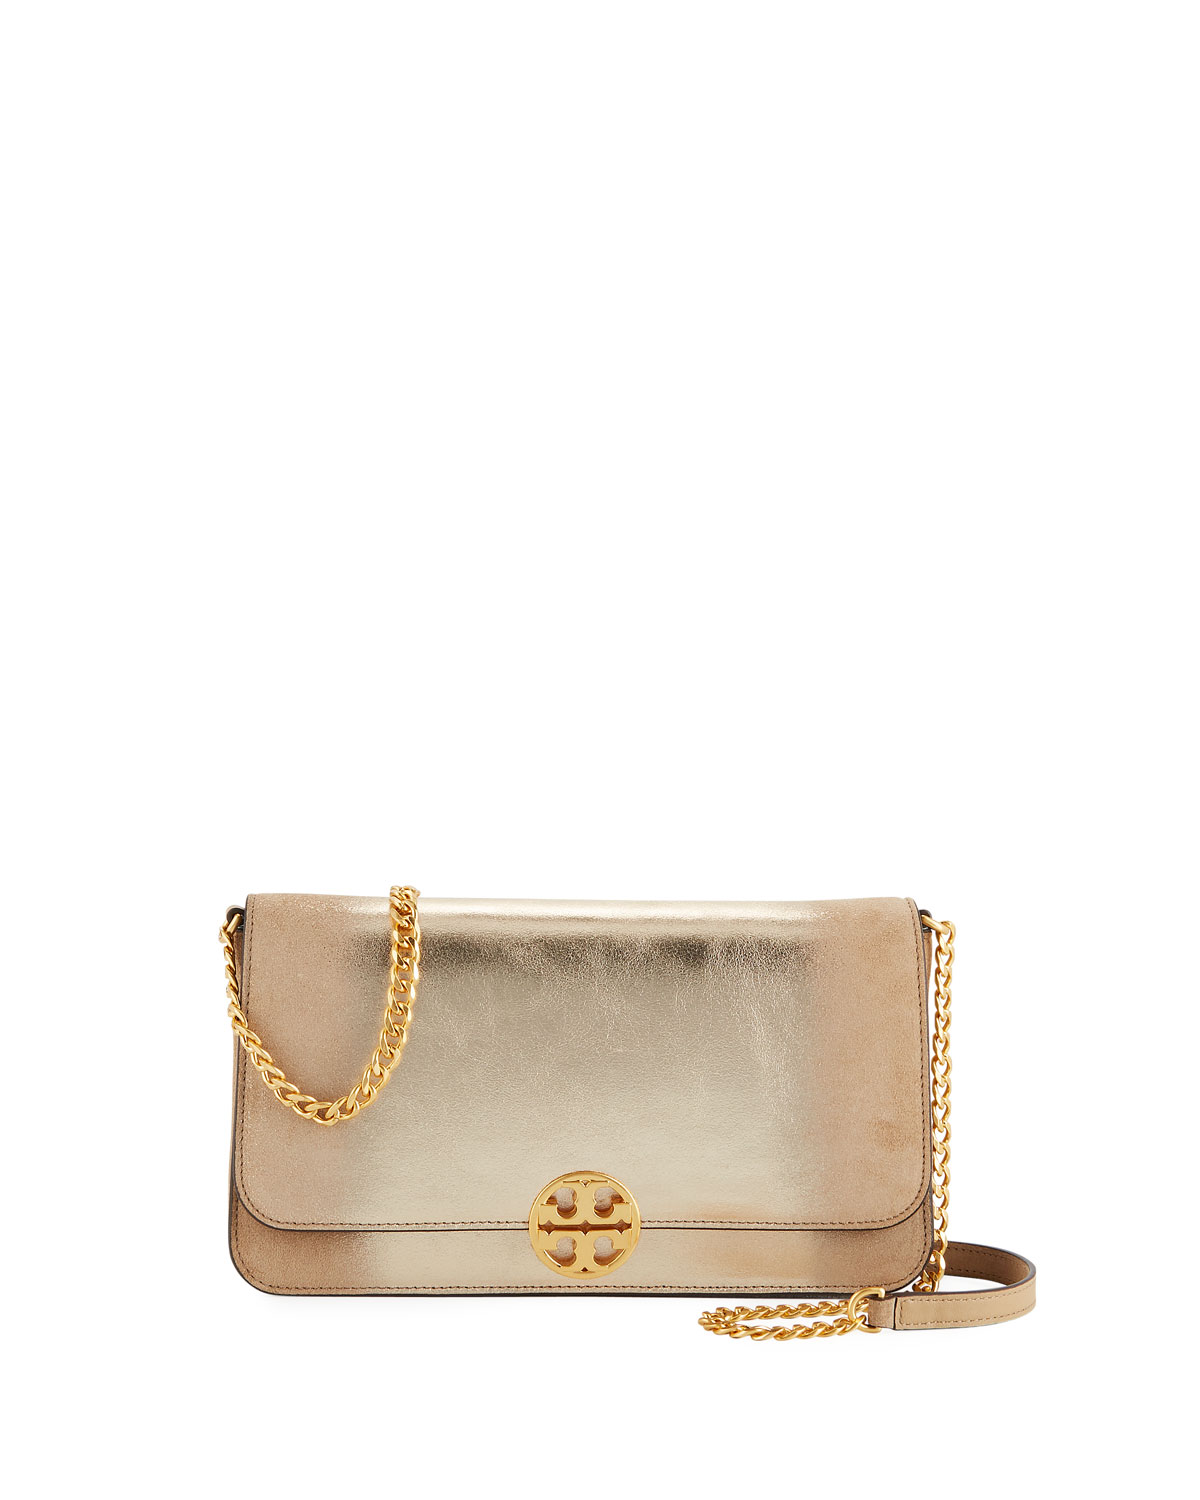 eef05e28db Tory Burch Chelsea Metallic Convertible Crossbody Bag